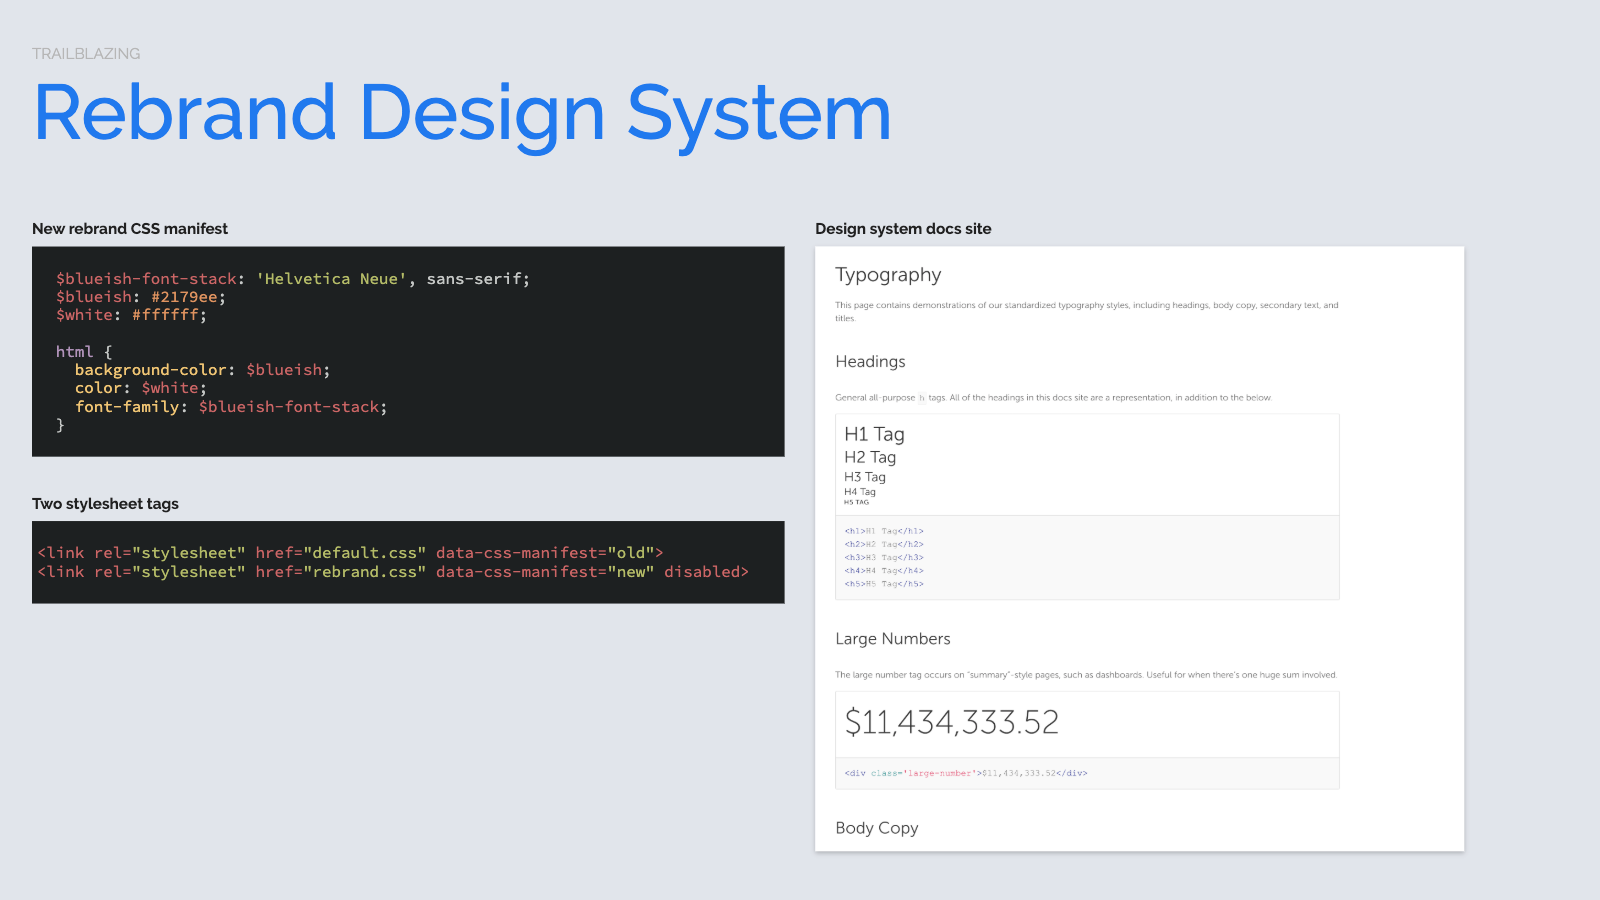 Slide content, Rebrand design system, CSS strategy for multiple stylesheets. Displaying styles currently in production